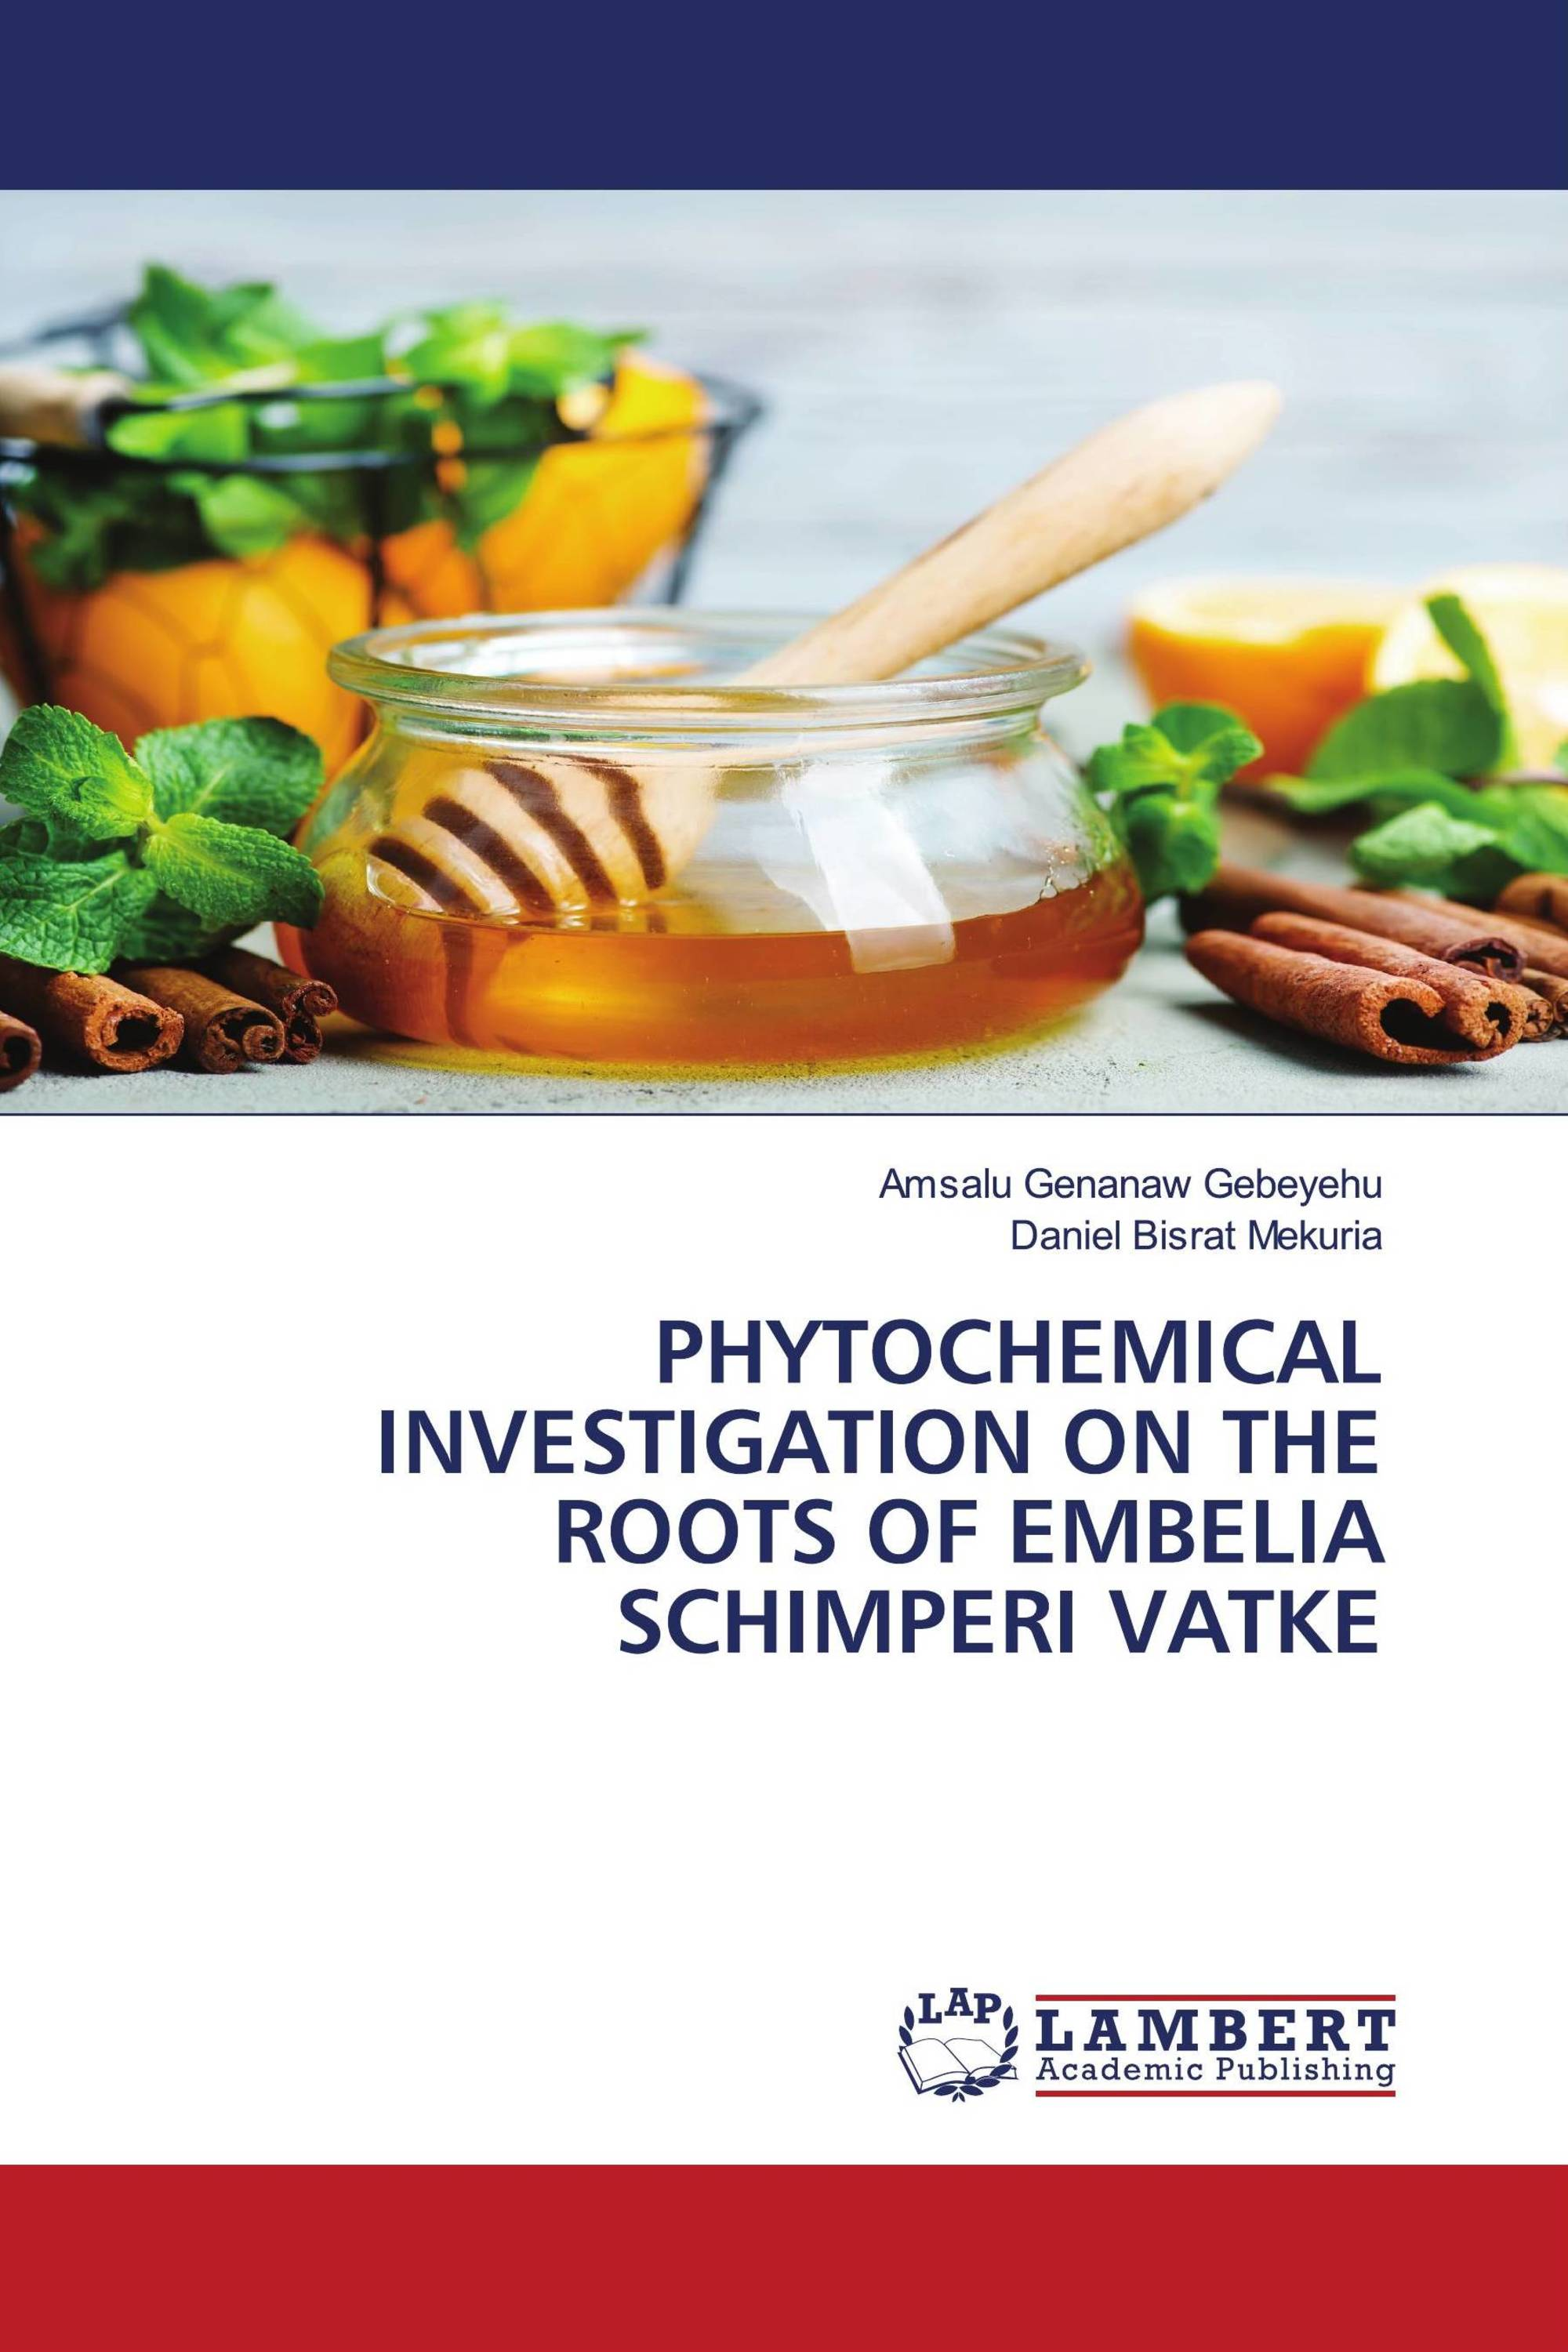 PHYTOCHEMICAL INVESTIGATION ON THE ROOTS OF EMBELIA SCHIMPERI VATKE